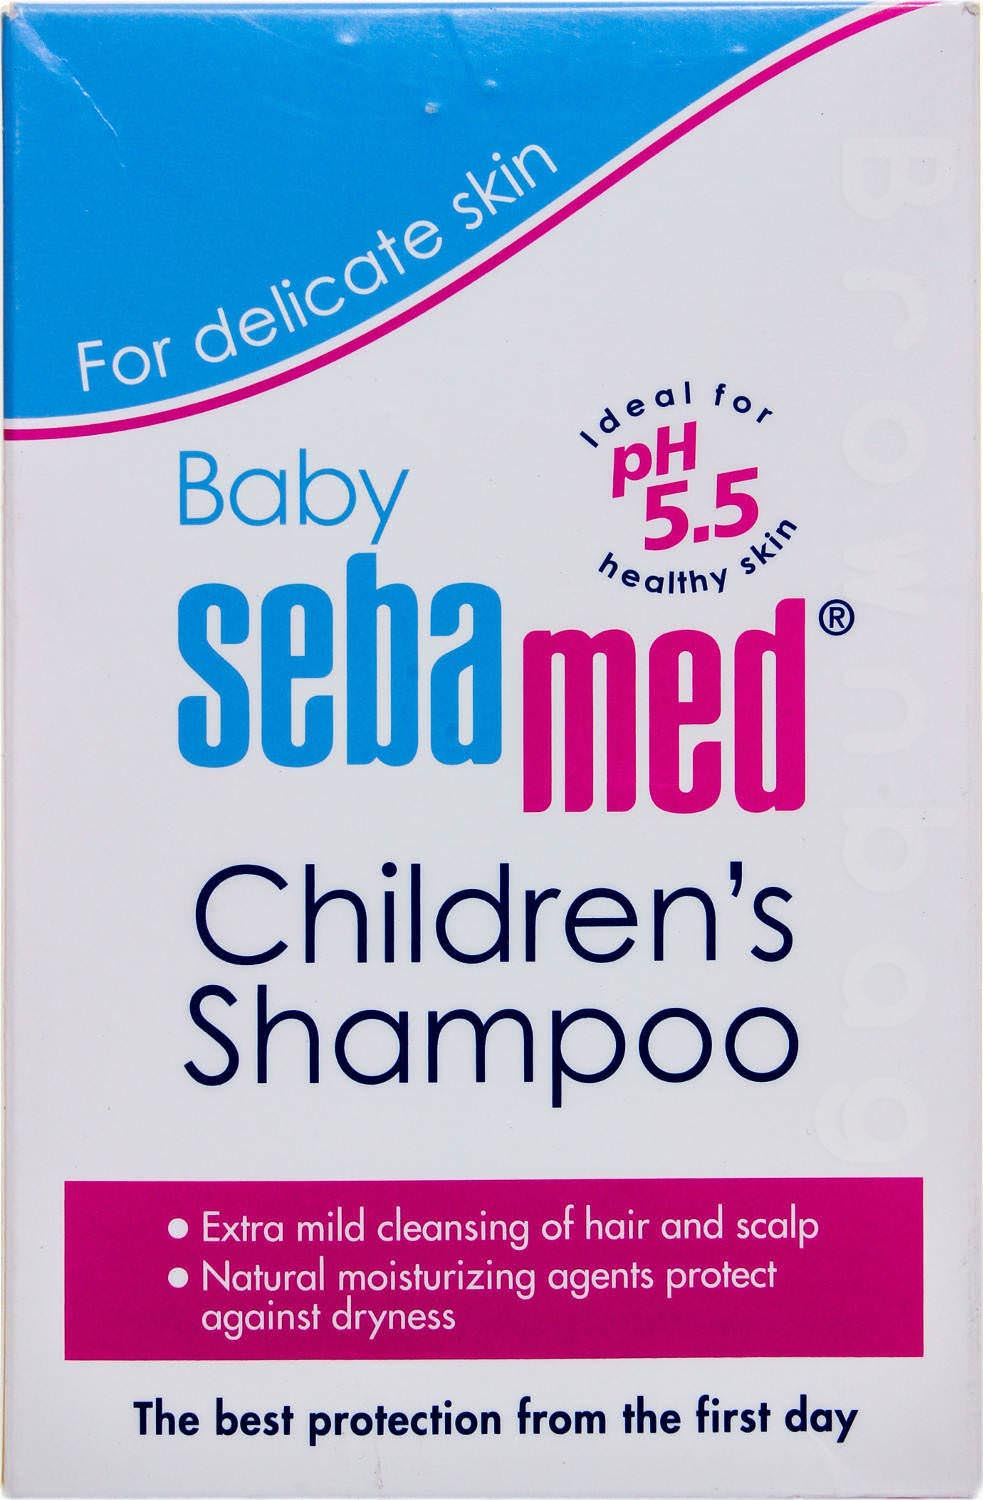 Baby Sebamed Children's Shampoo